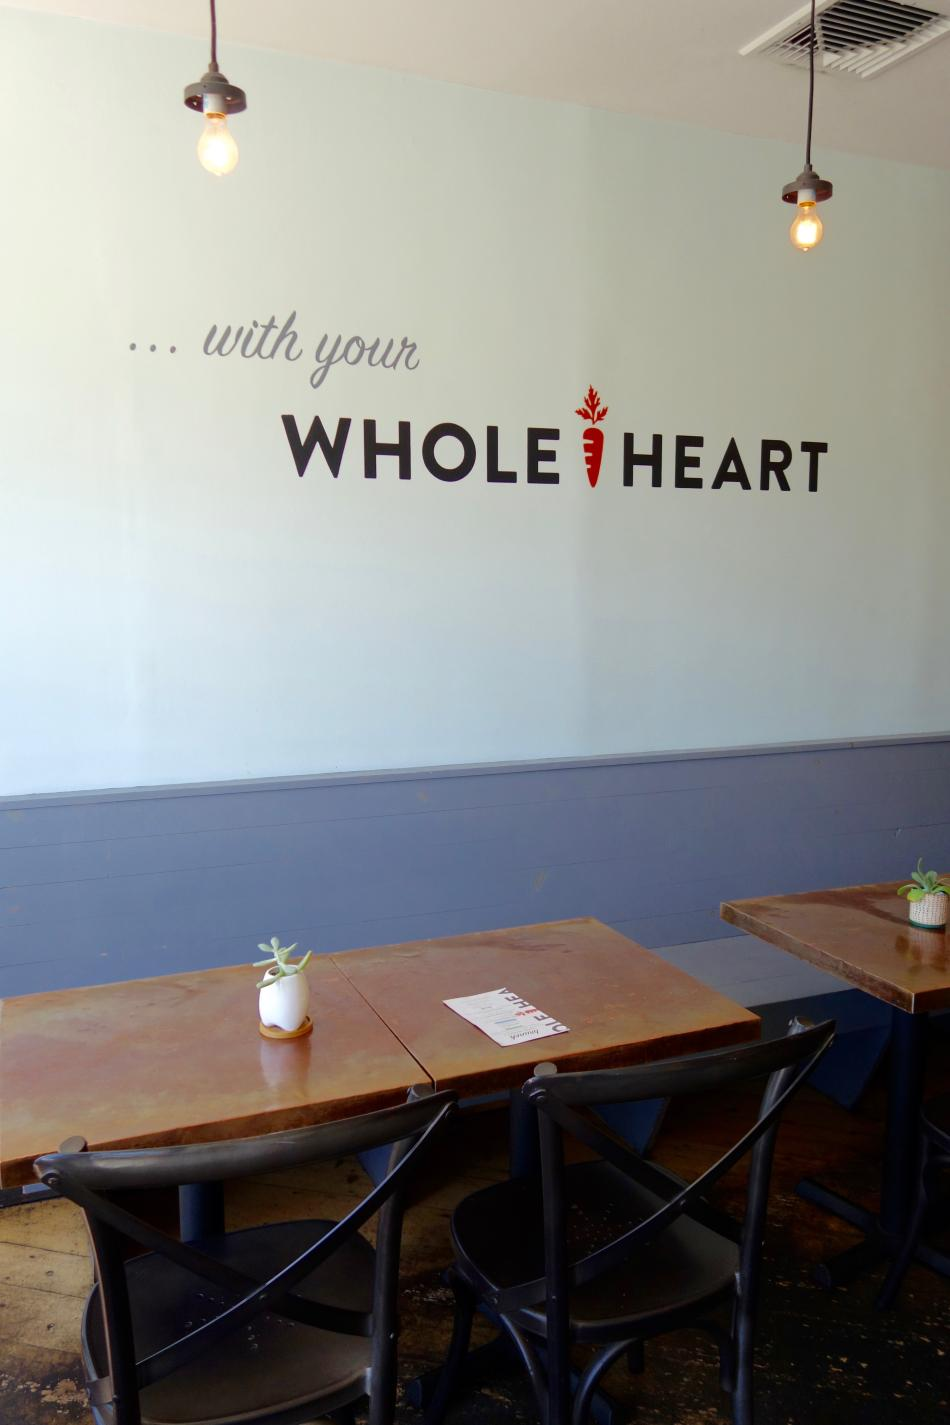 Whole Heart Provisions